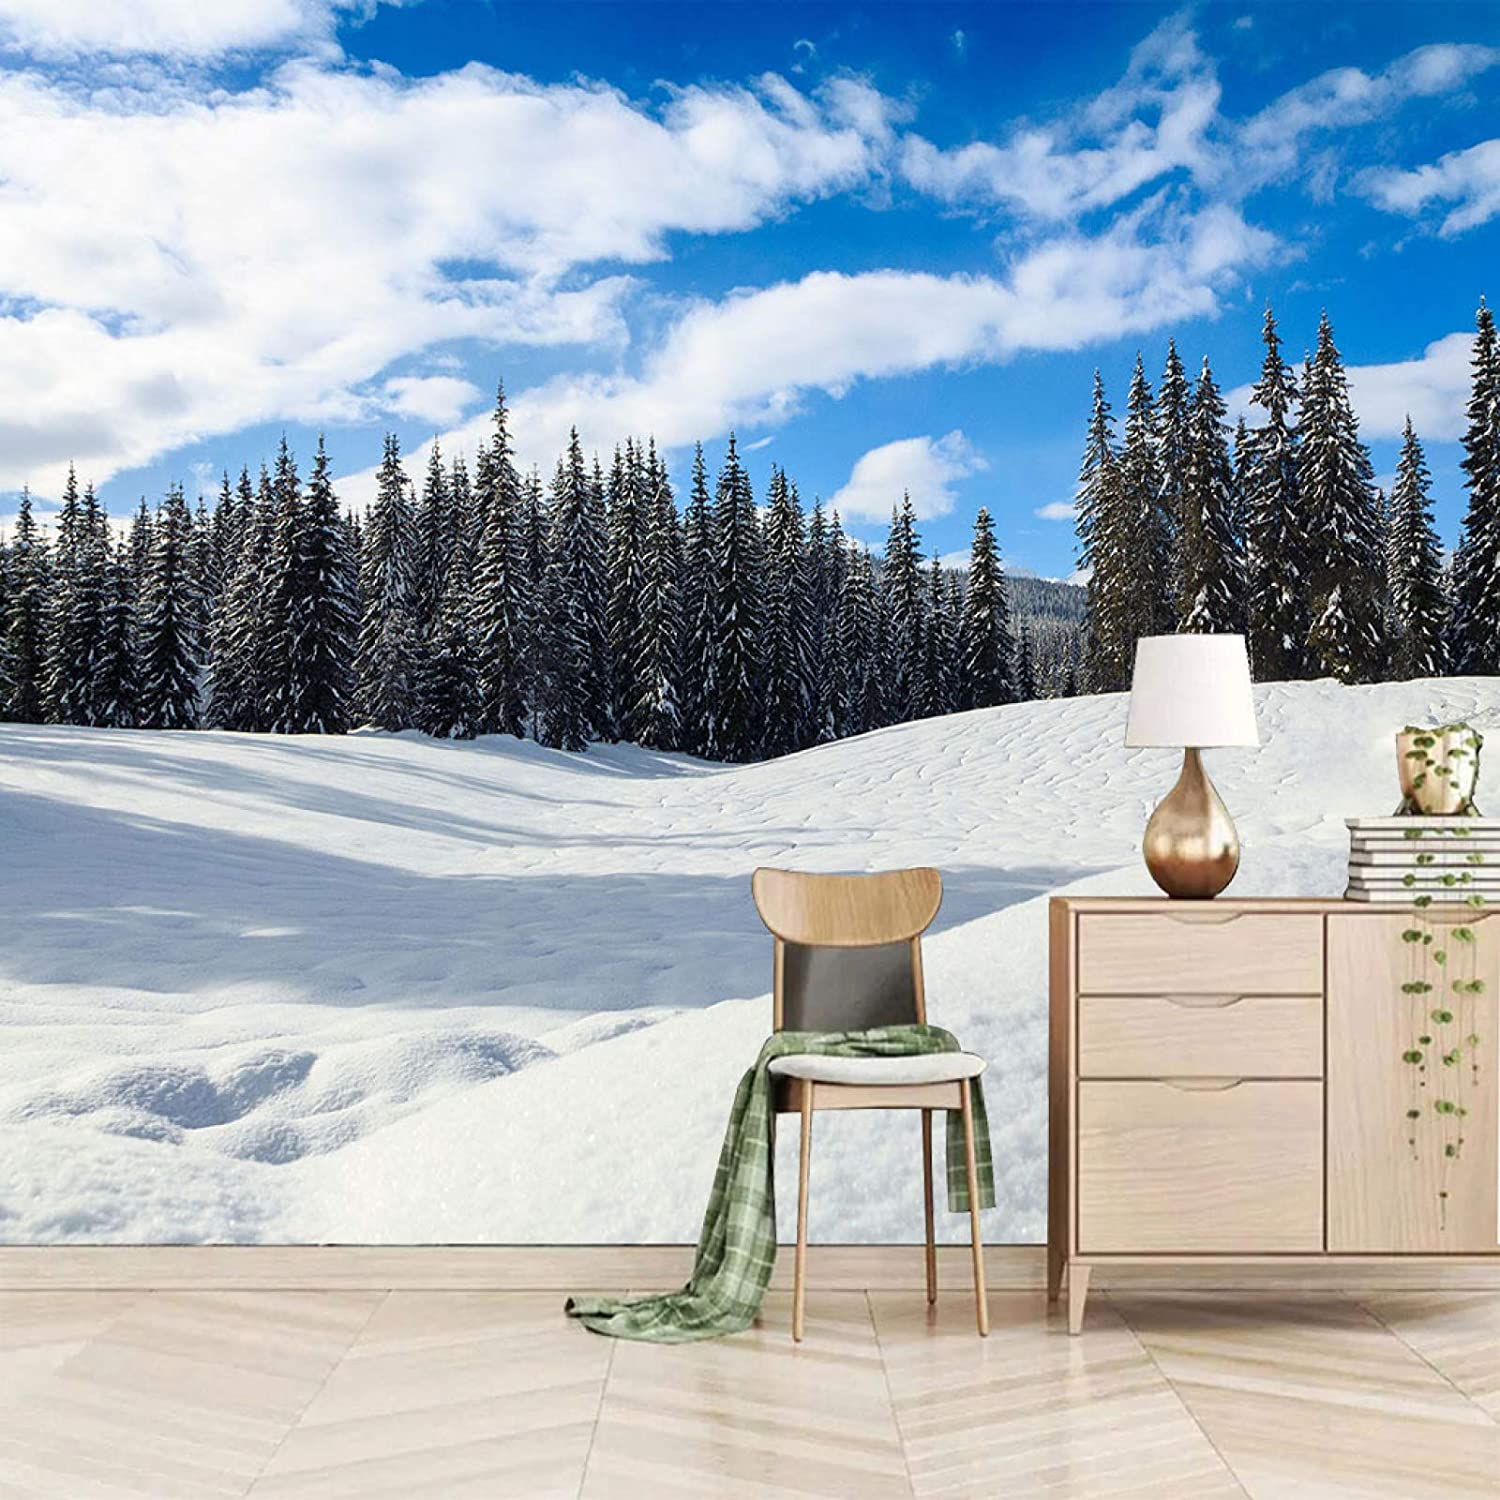 XiaoCha Snow Plants Year-end annual account Forests Challenge the lowest price of Japan ☆ Scenery Sticke 3D Self-Adhesive Wall